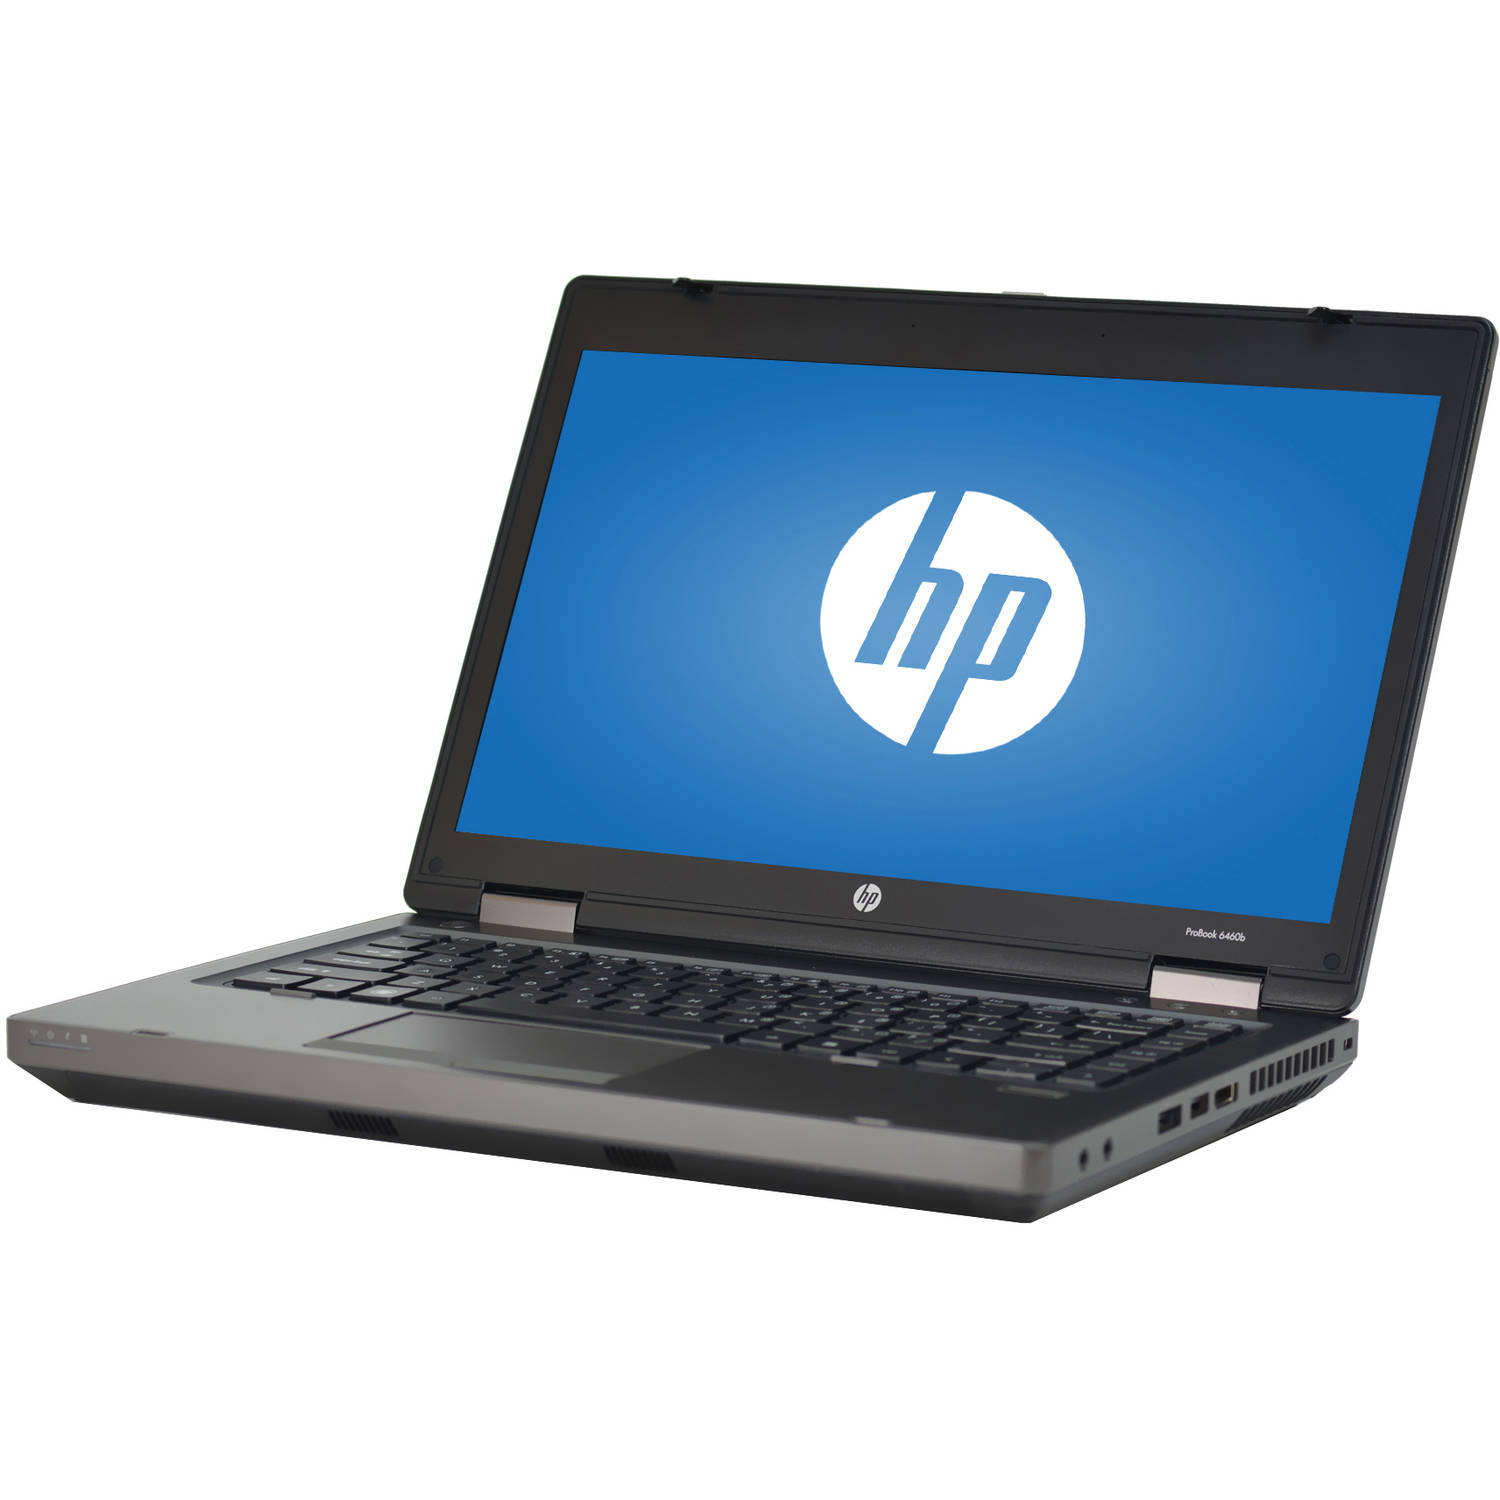 "Refurbished HP Black 14"" 6460B Laptop PC with Intel Core i5-2520M Processor, 6GB Memory, 500GB Hard Drive and Windows 7 Home Premium"